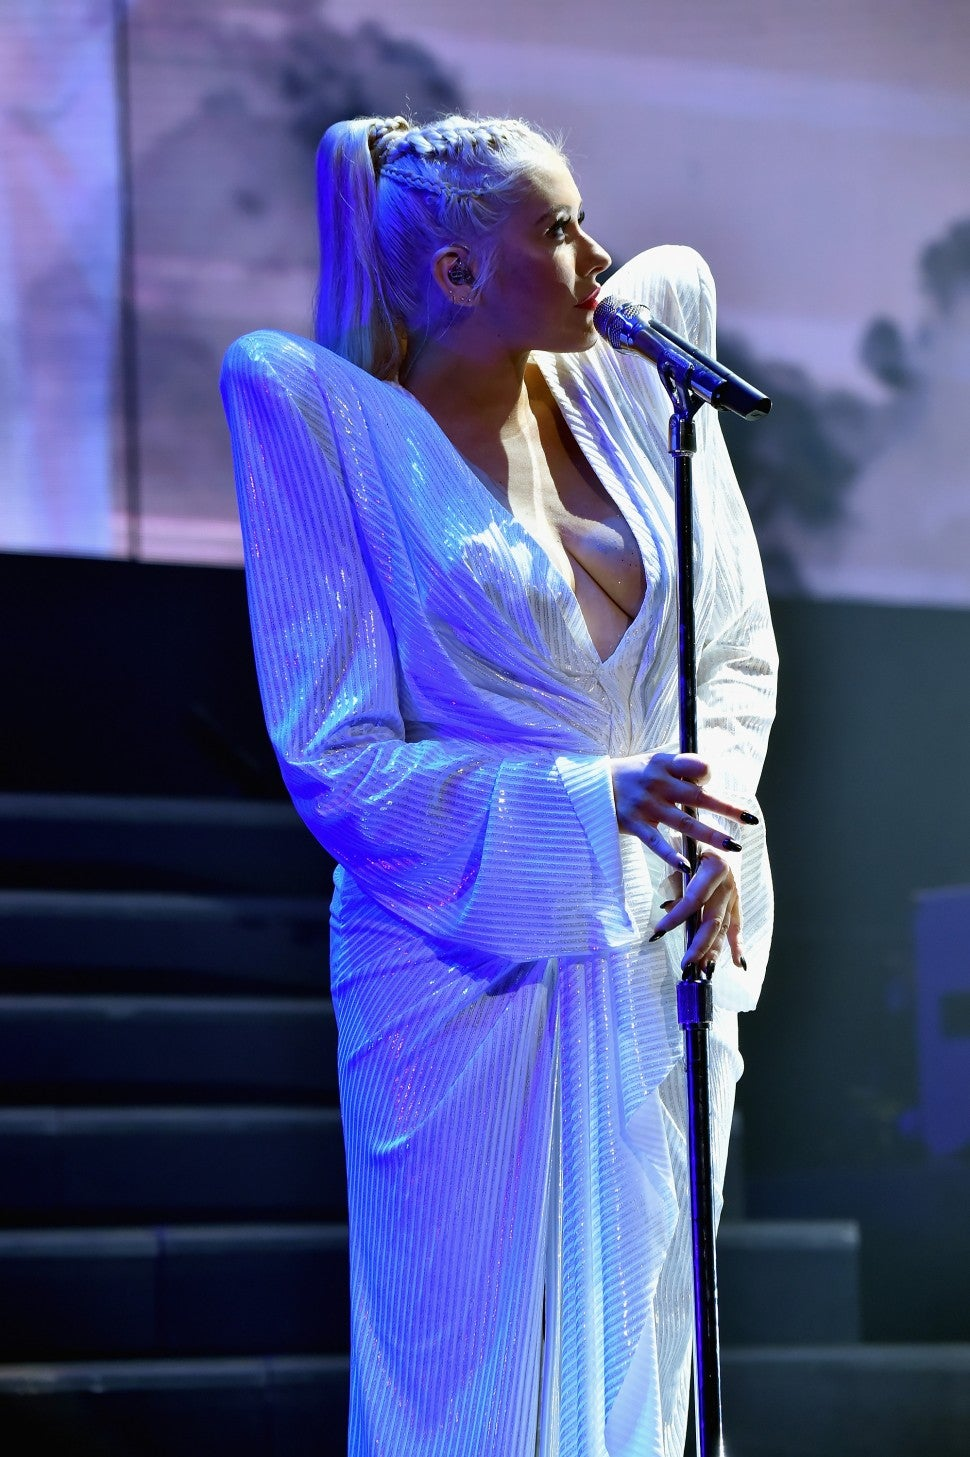 Christina Aguilera tour sequined dress